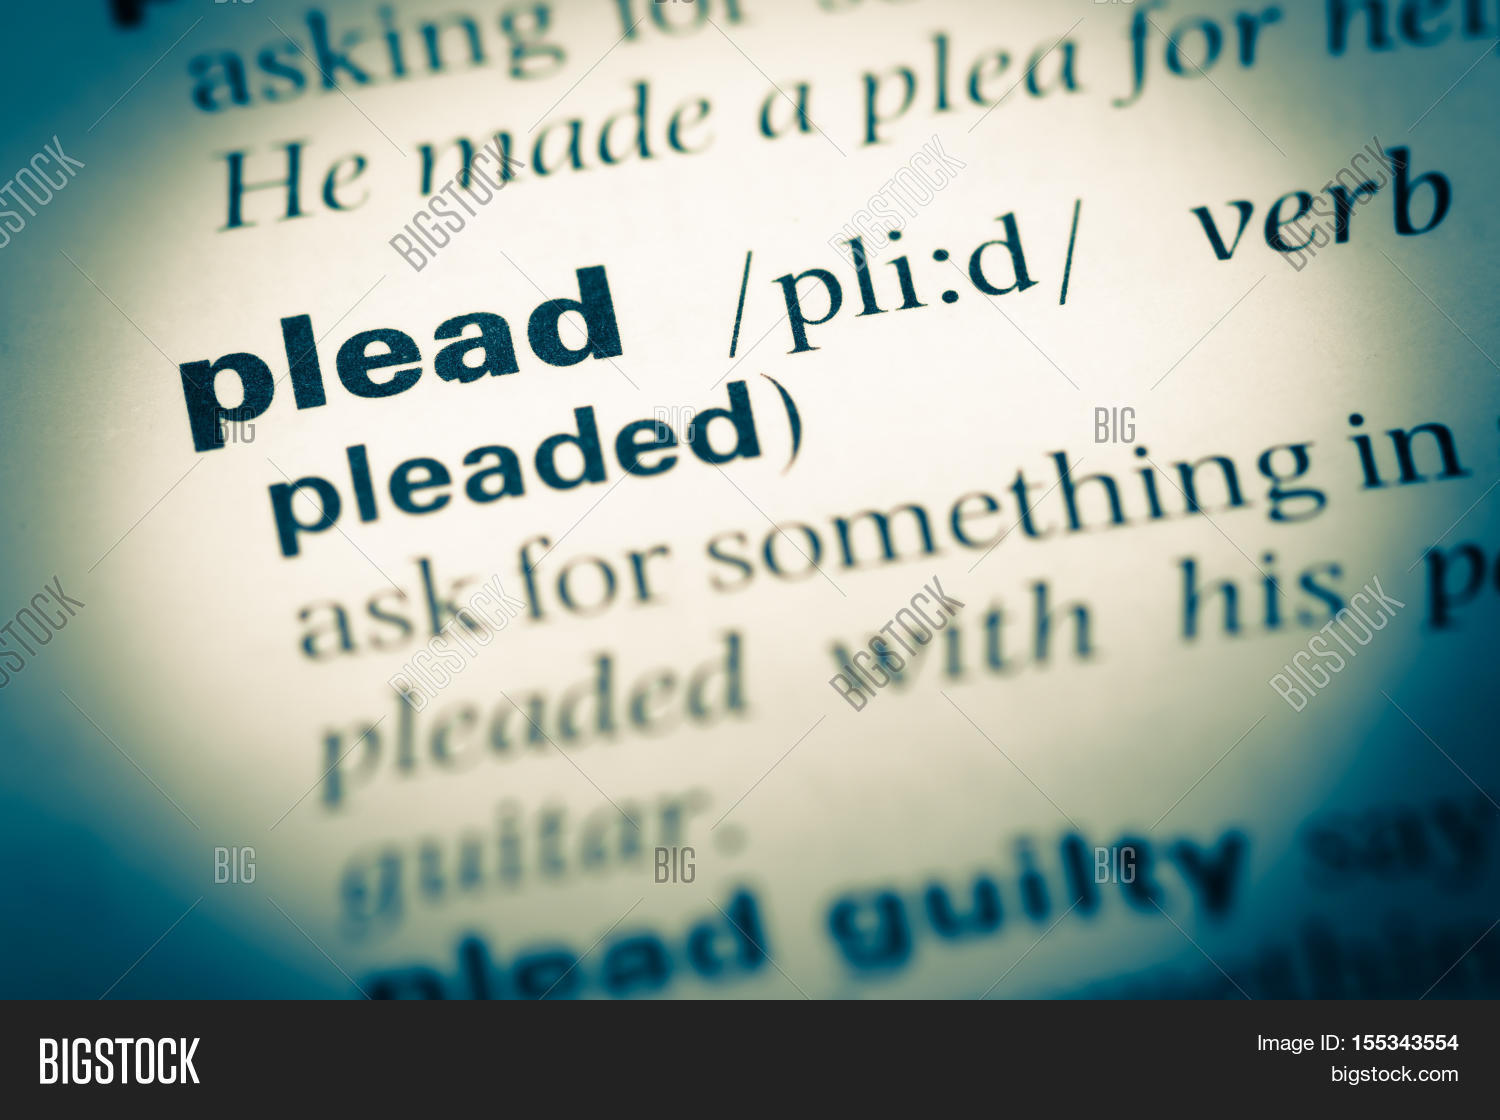 another word for plead